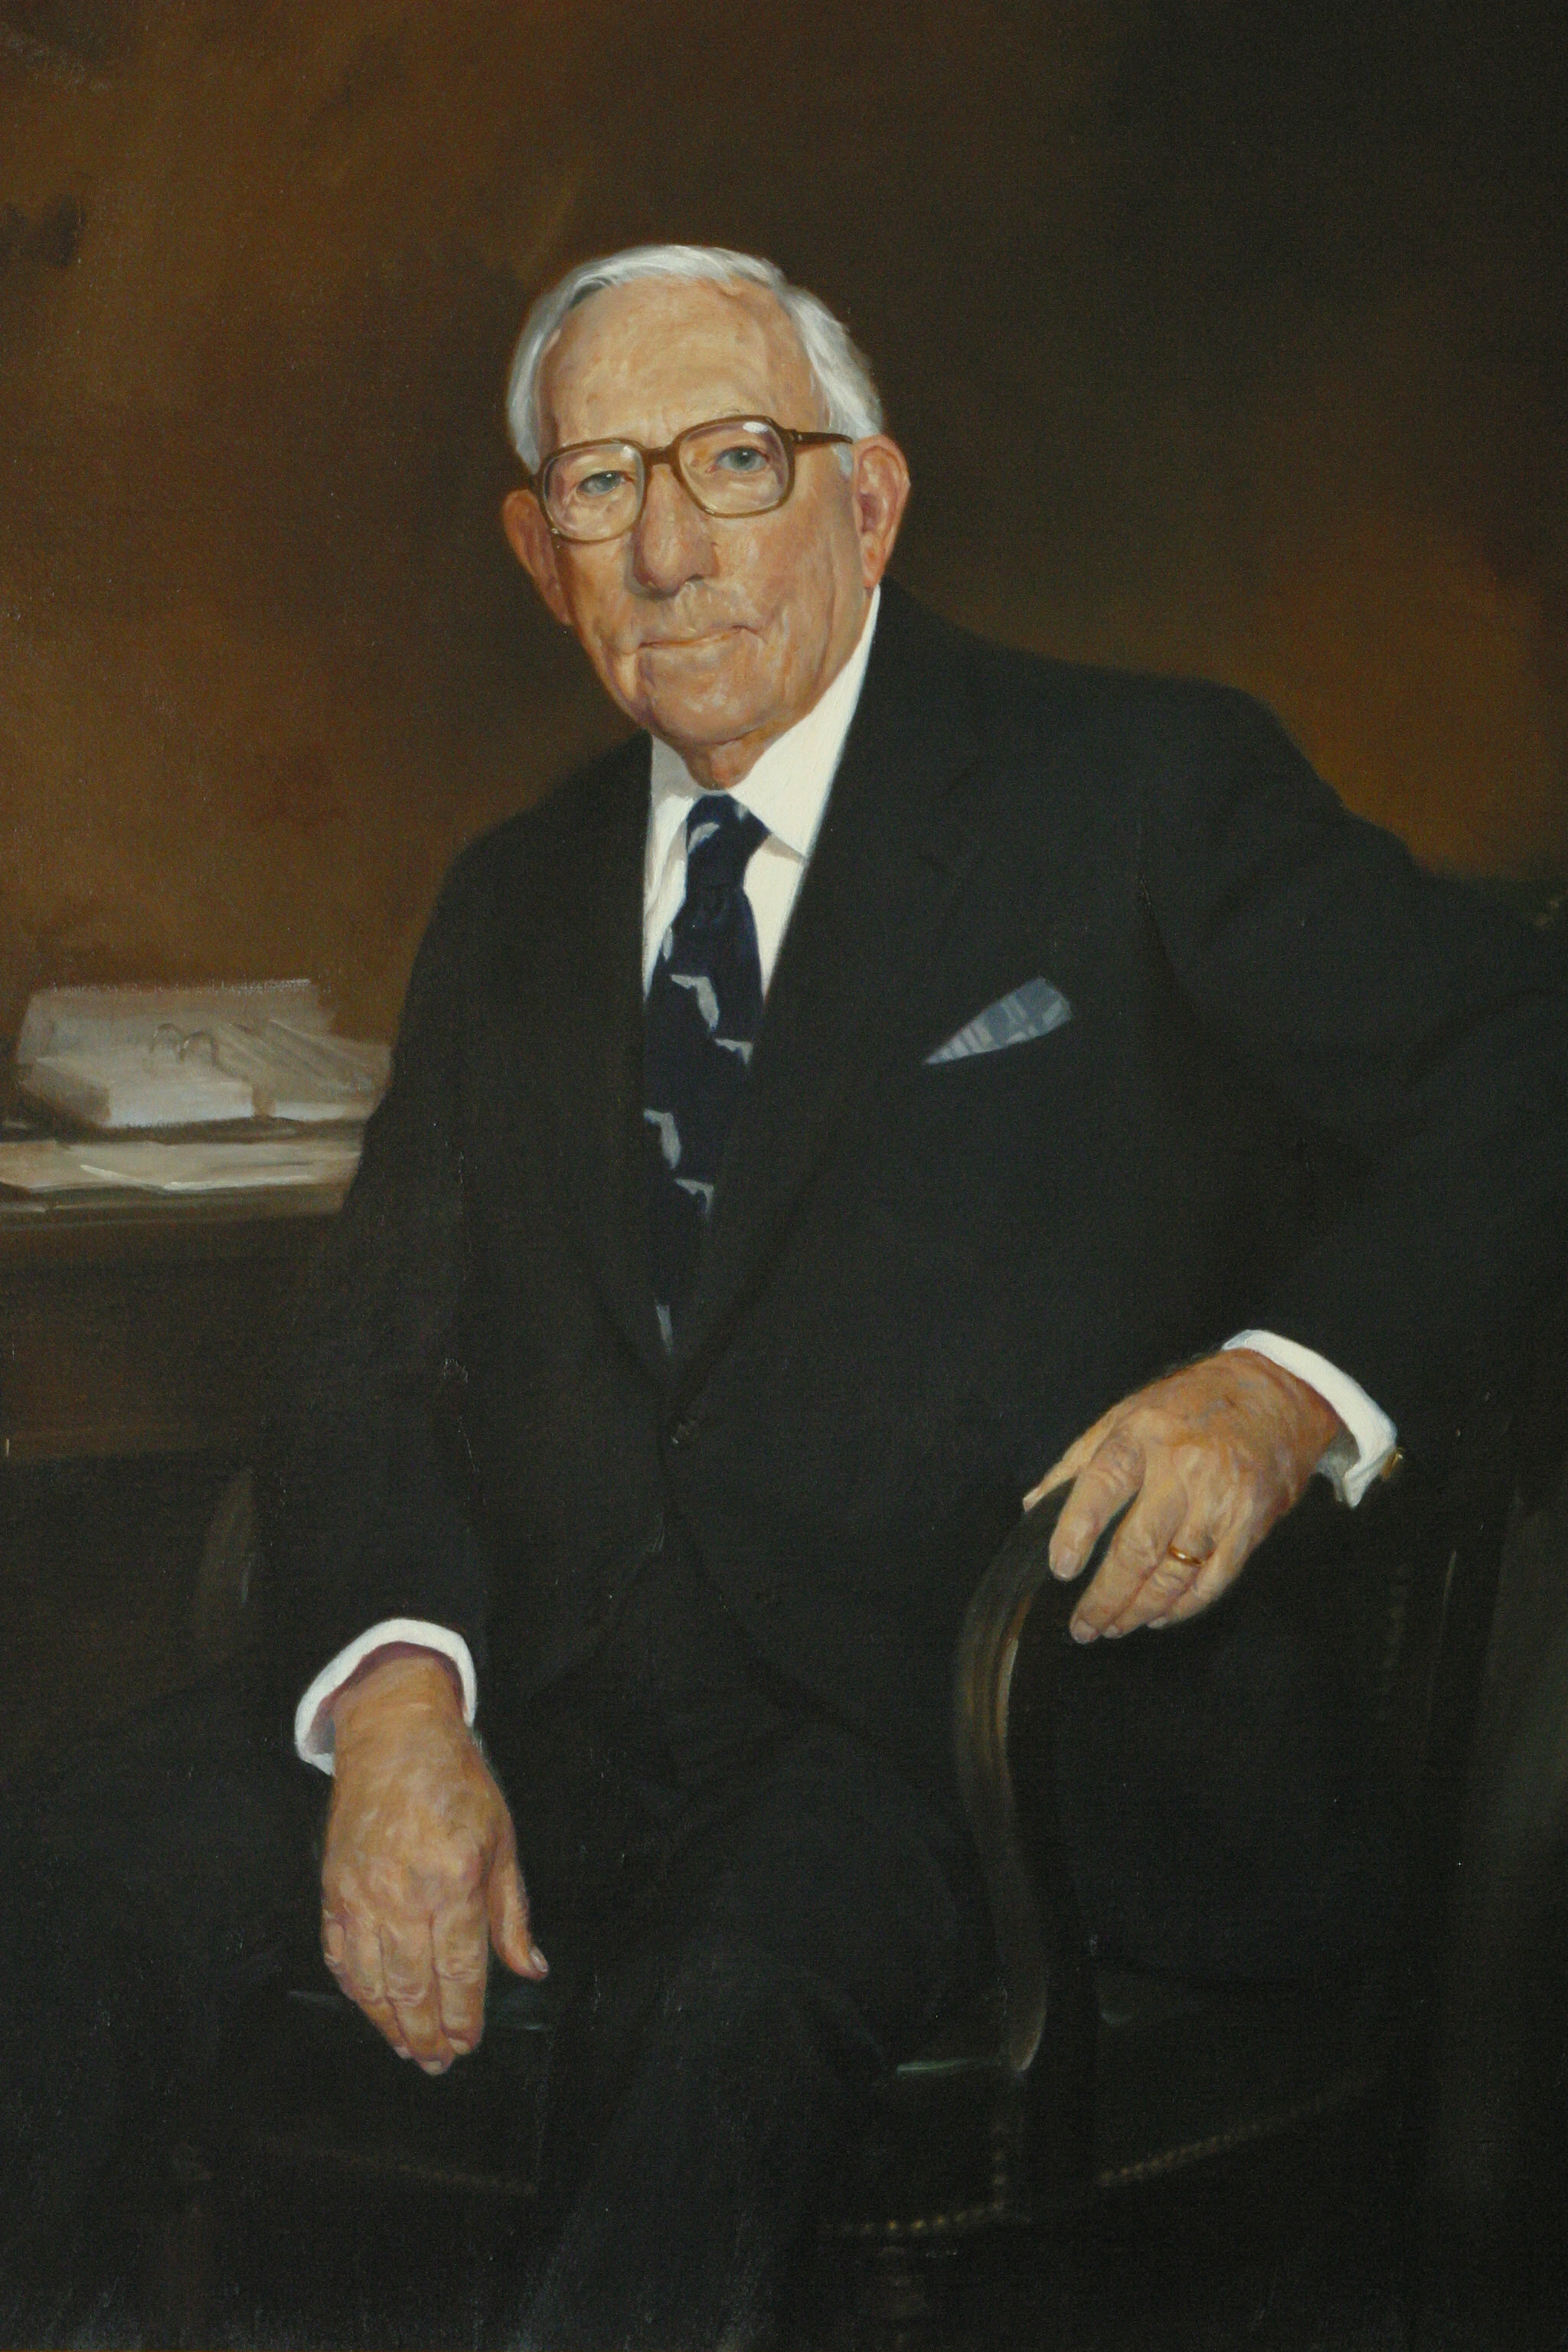 Portrait of Pepper in the Collection of the U.S. House of Representatives